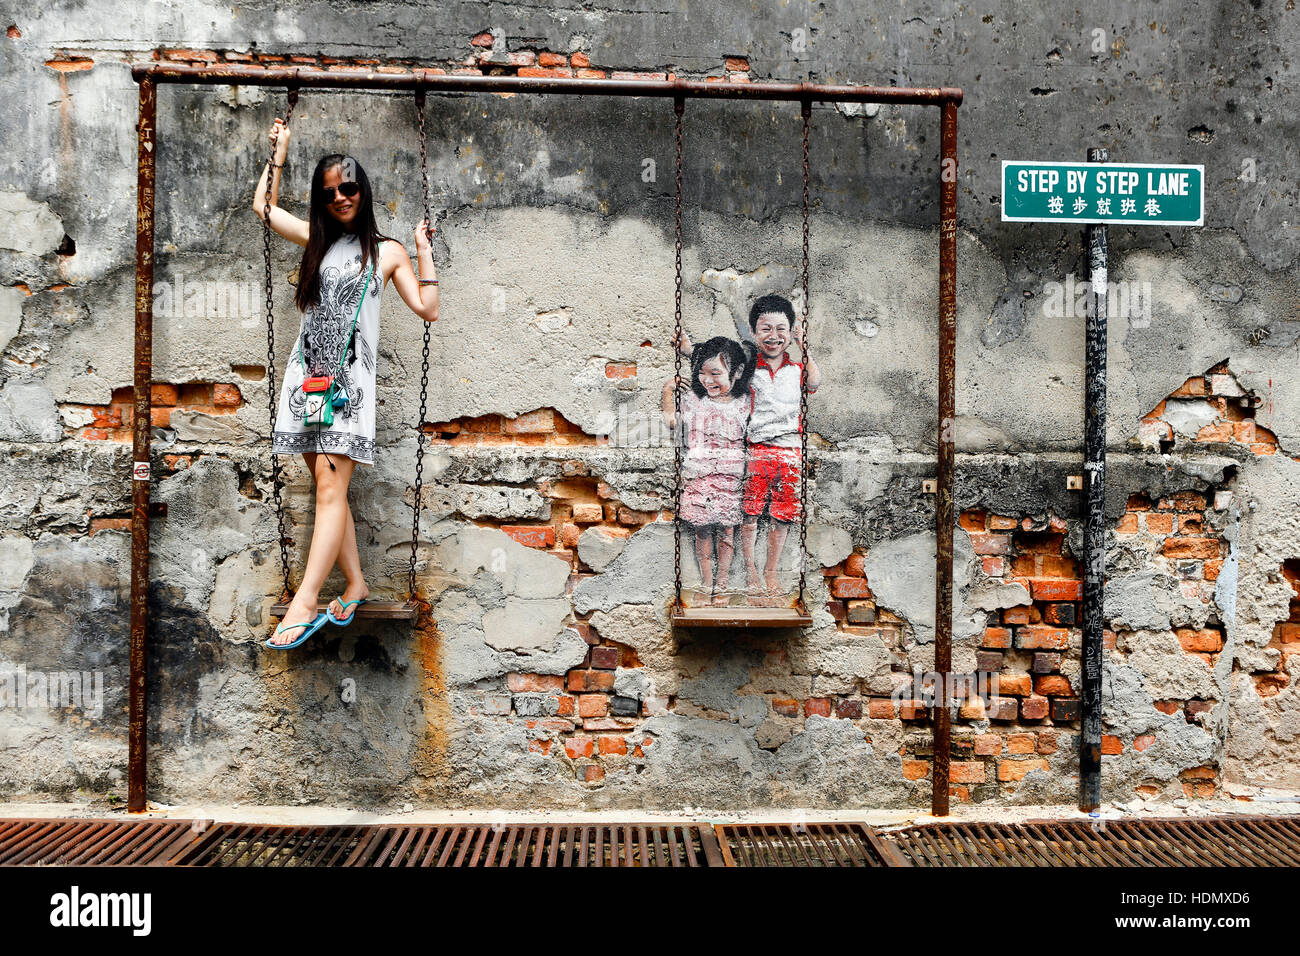 Georgetown Penang Wall Mural Street Art Stock Photo